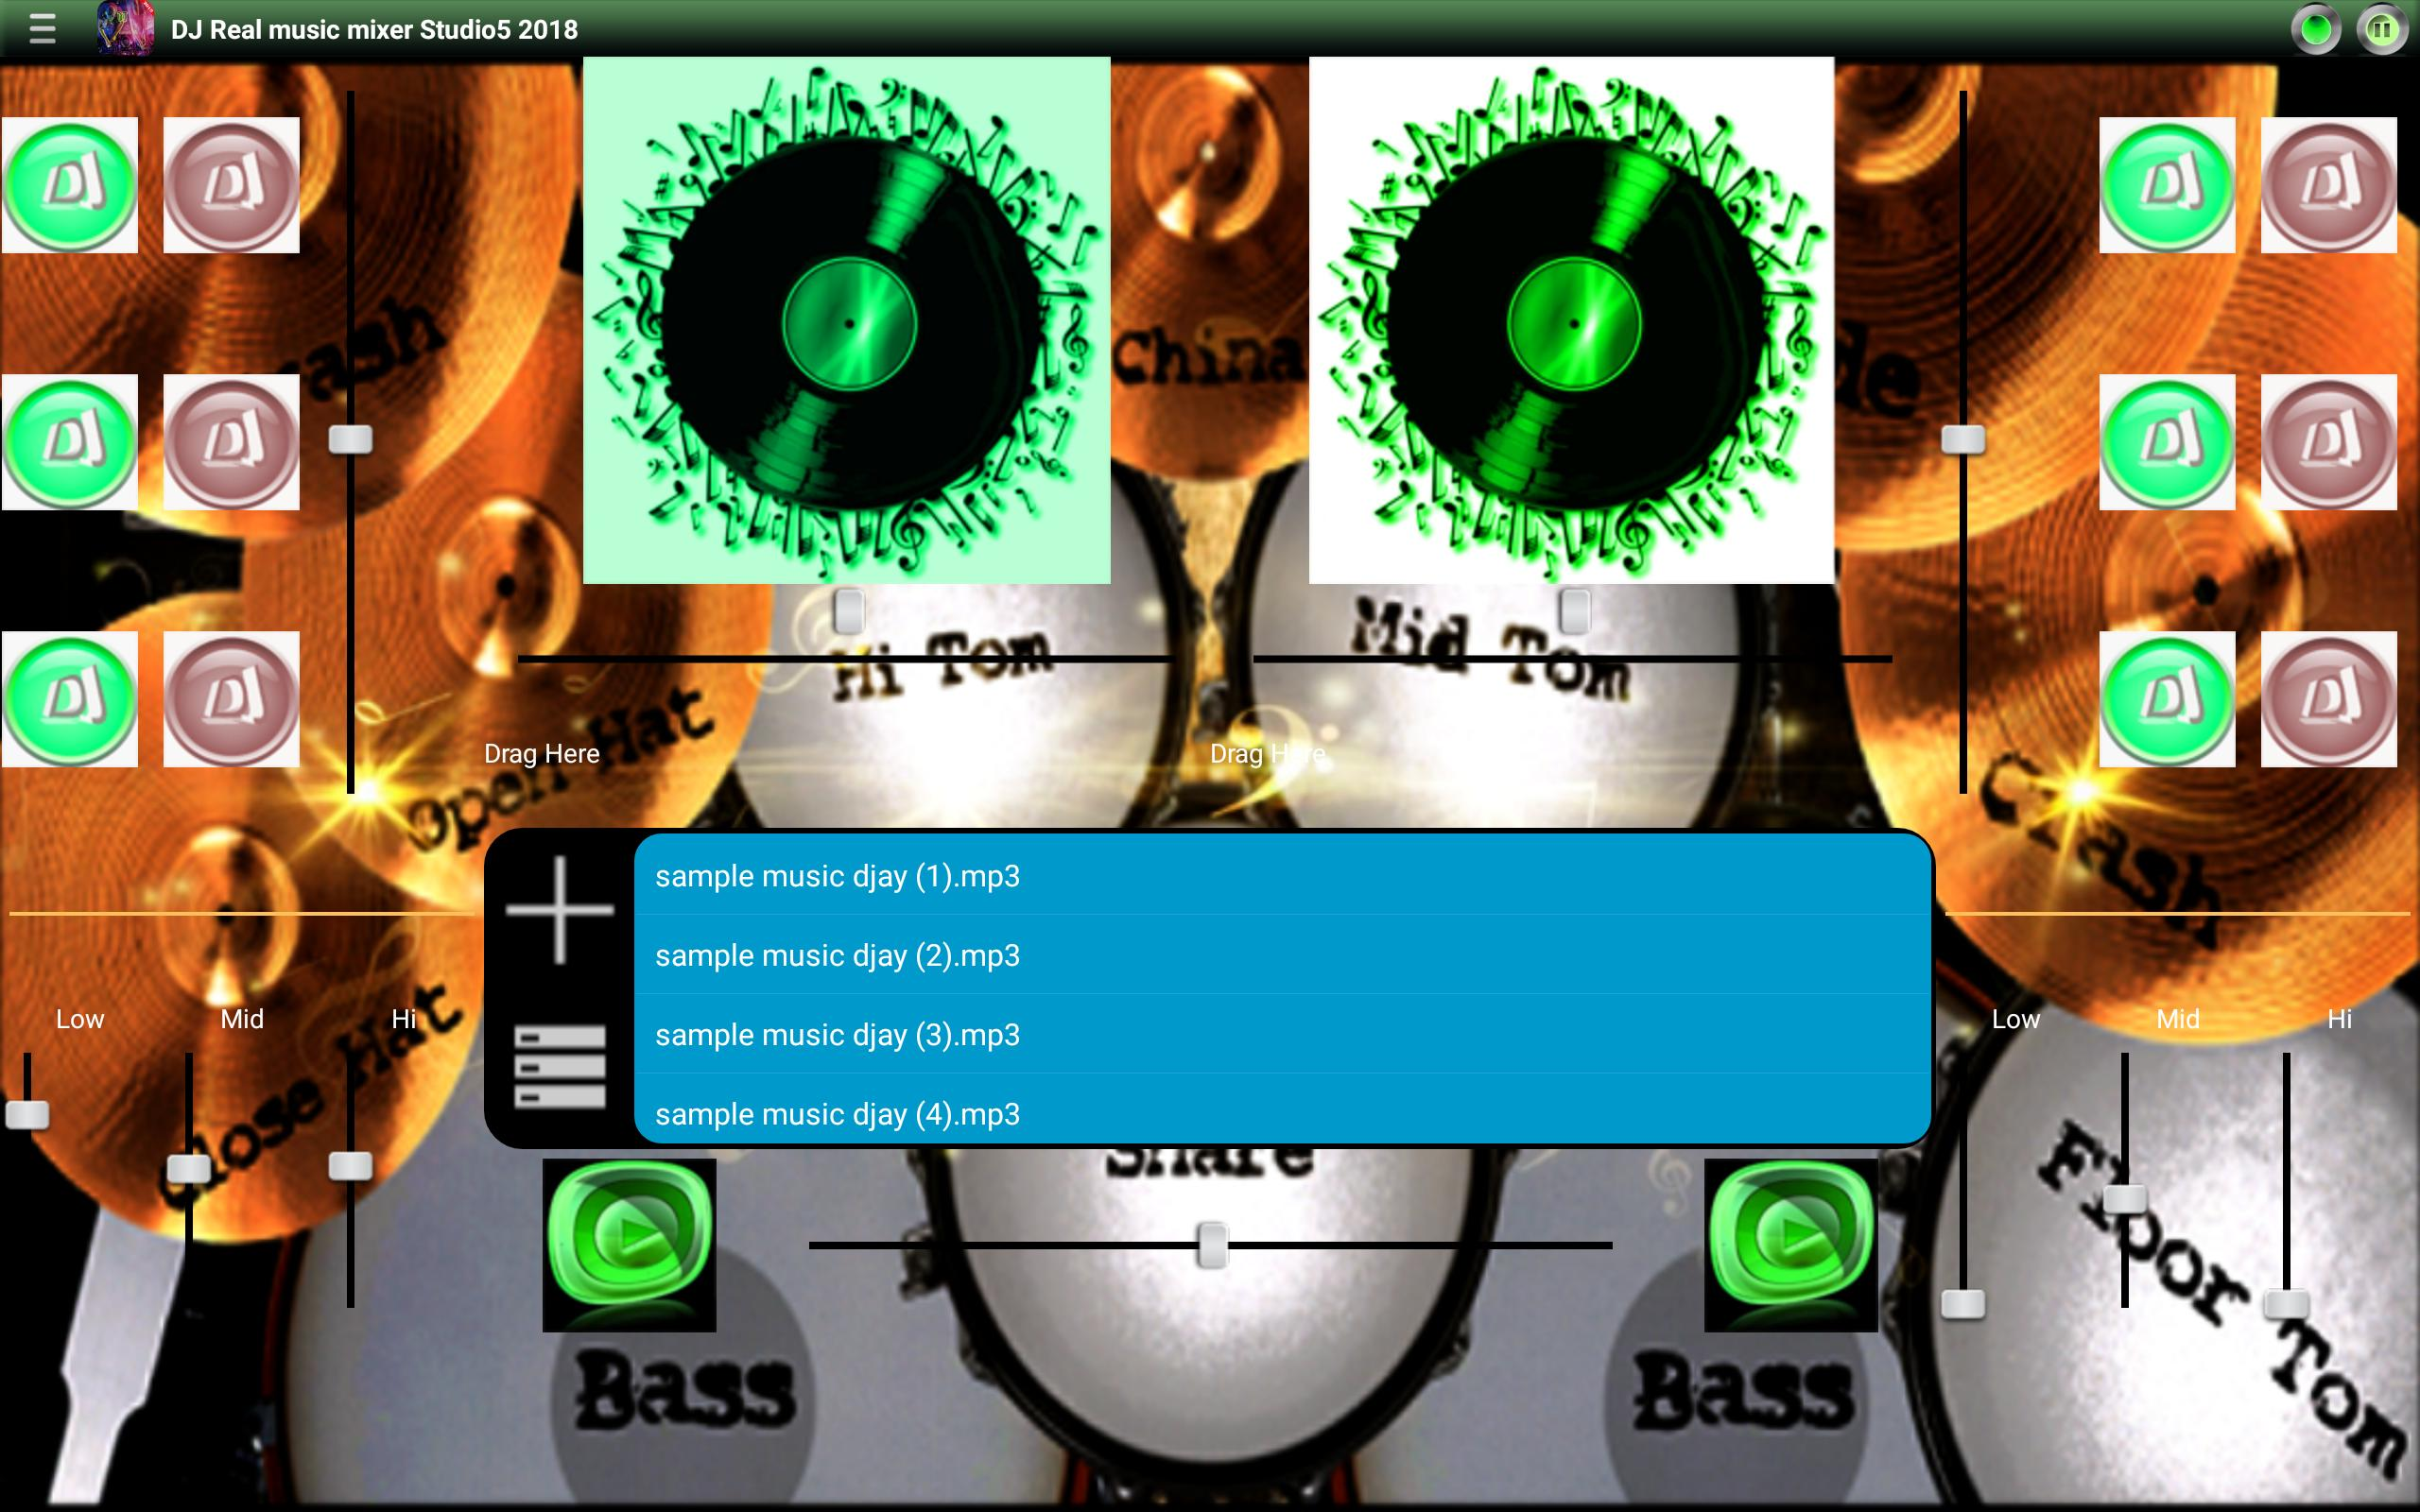 DJ Real music mixer Studio5 2018 for Android - APK Download